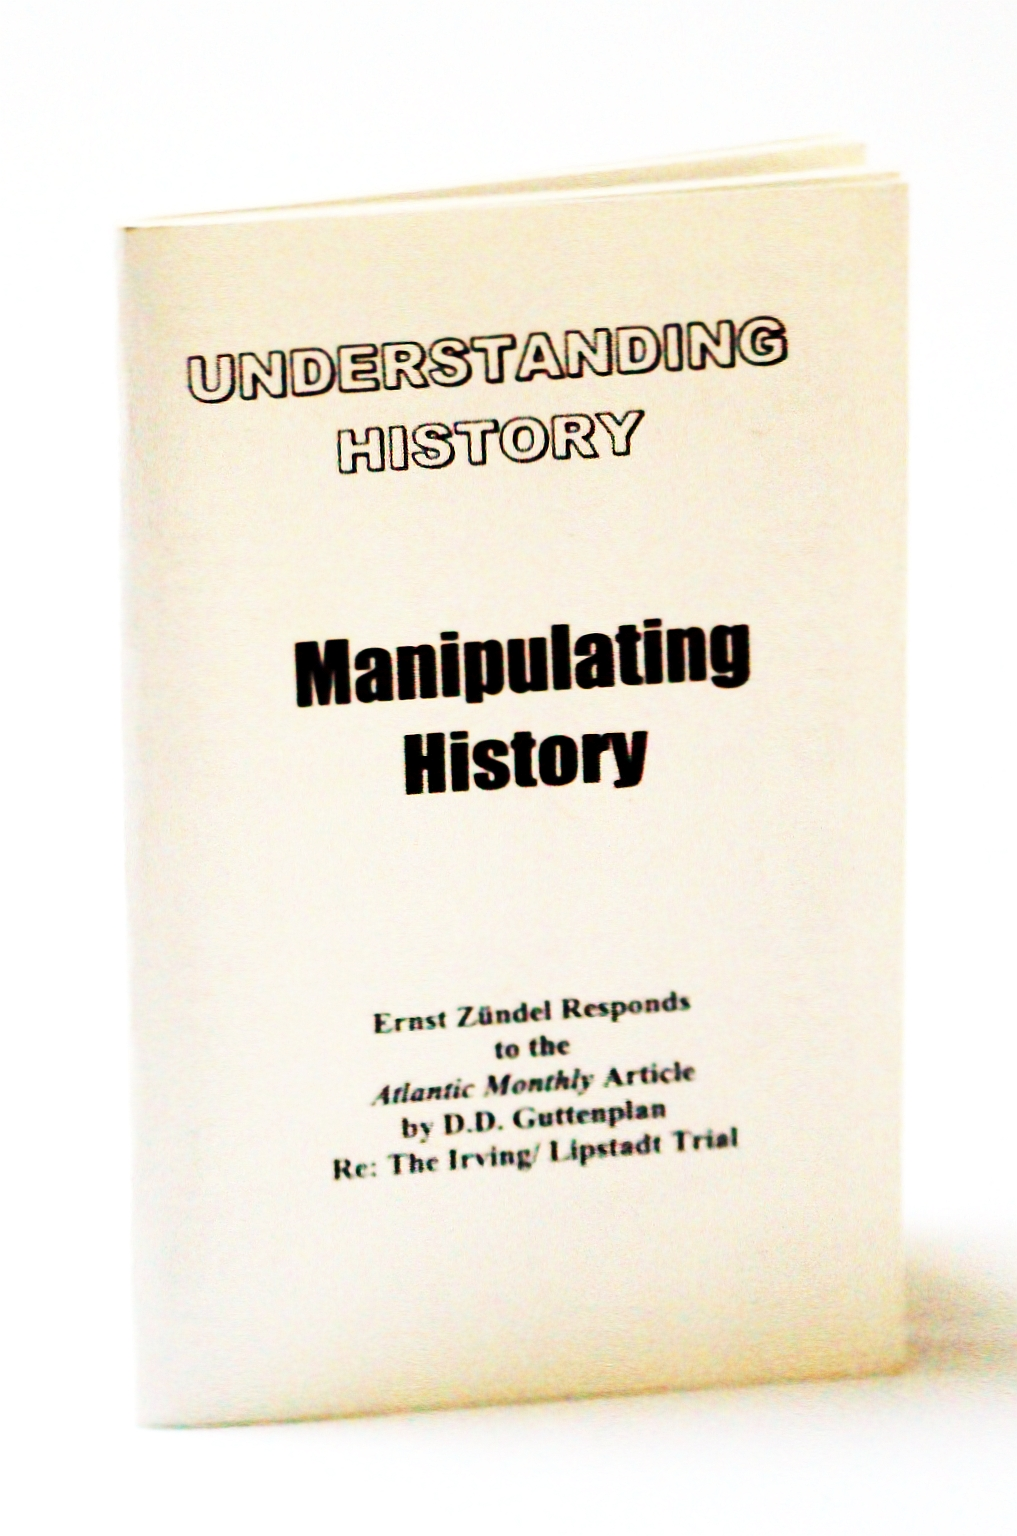 Image for Understanding History / Manipulating History: Ernst Zundel Responds to the Atlantic Monthly Article By D.D. Guttenplan Re: The [David] Irving / [Deborah] Lipstadt Trial